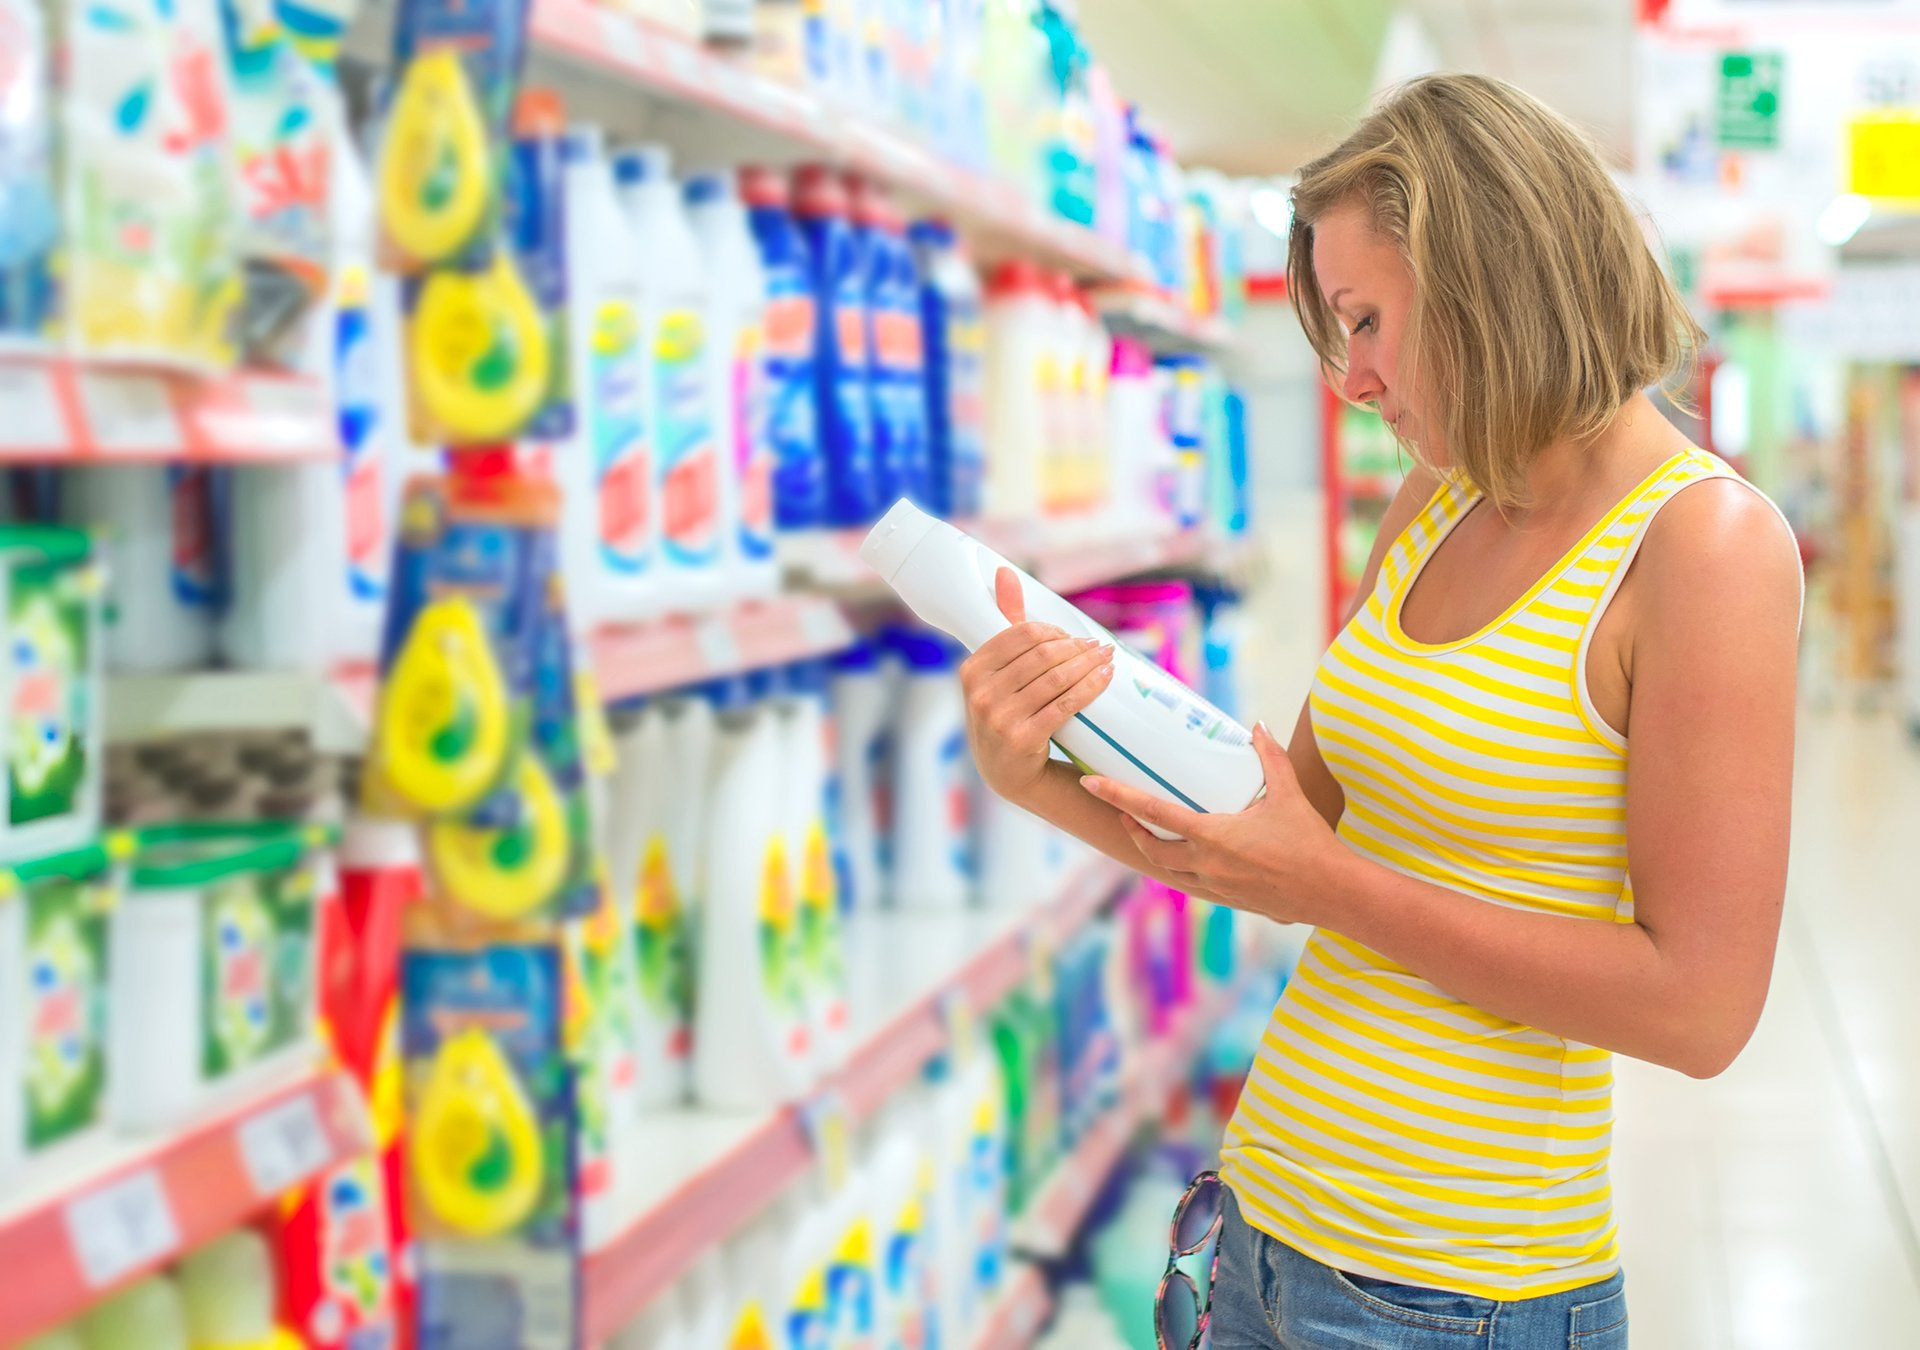 Royalty-free stock photo ID: 228756514 Woman choosing laundry detergent in grocery store